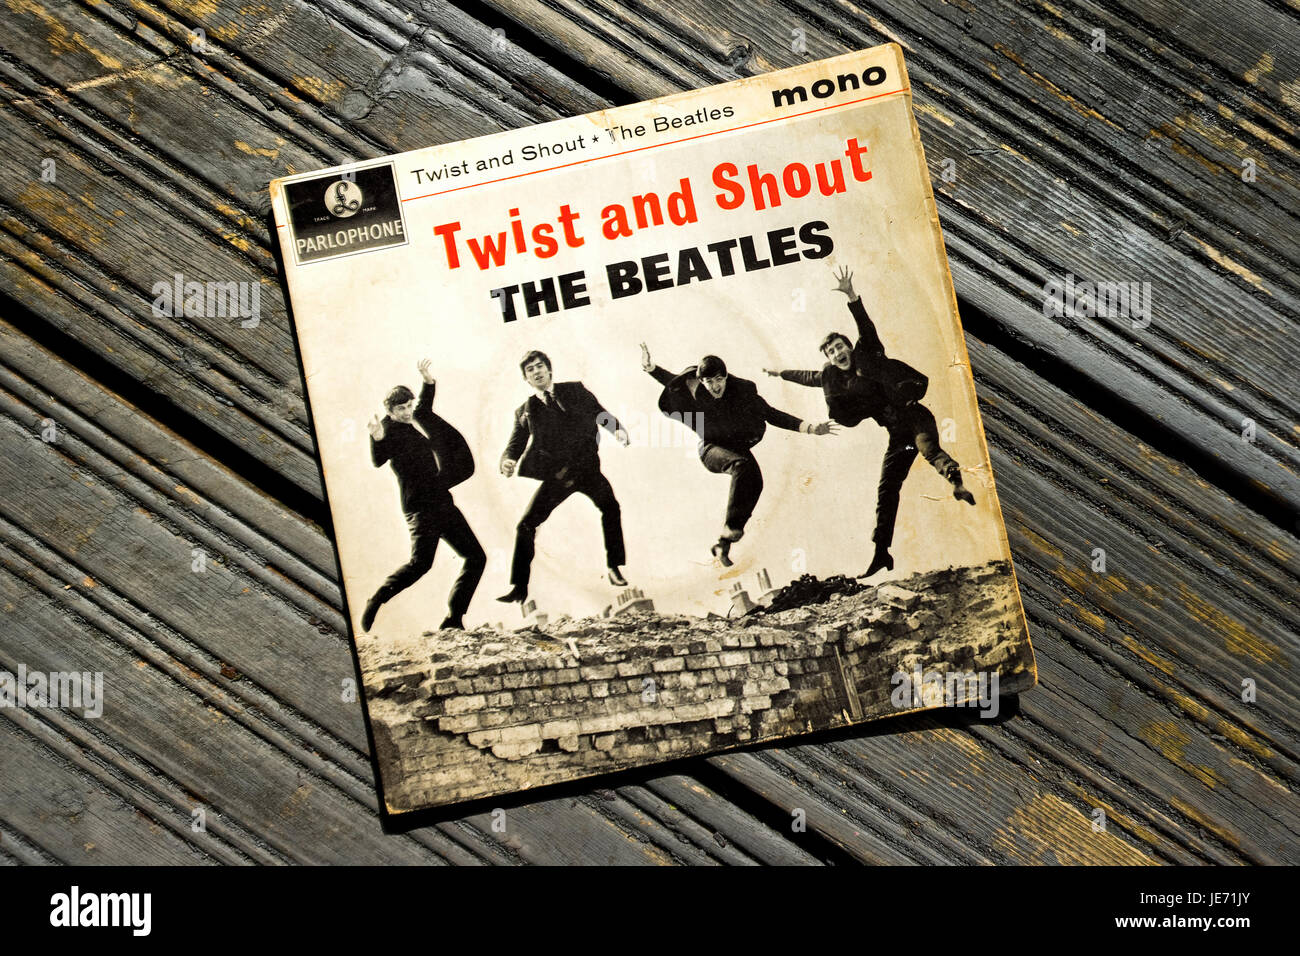 Twist and Shout Record Single first released on 22nd March 1962 on Parlophone label and produced by George Martin. Stock Photo